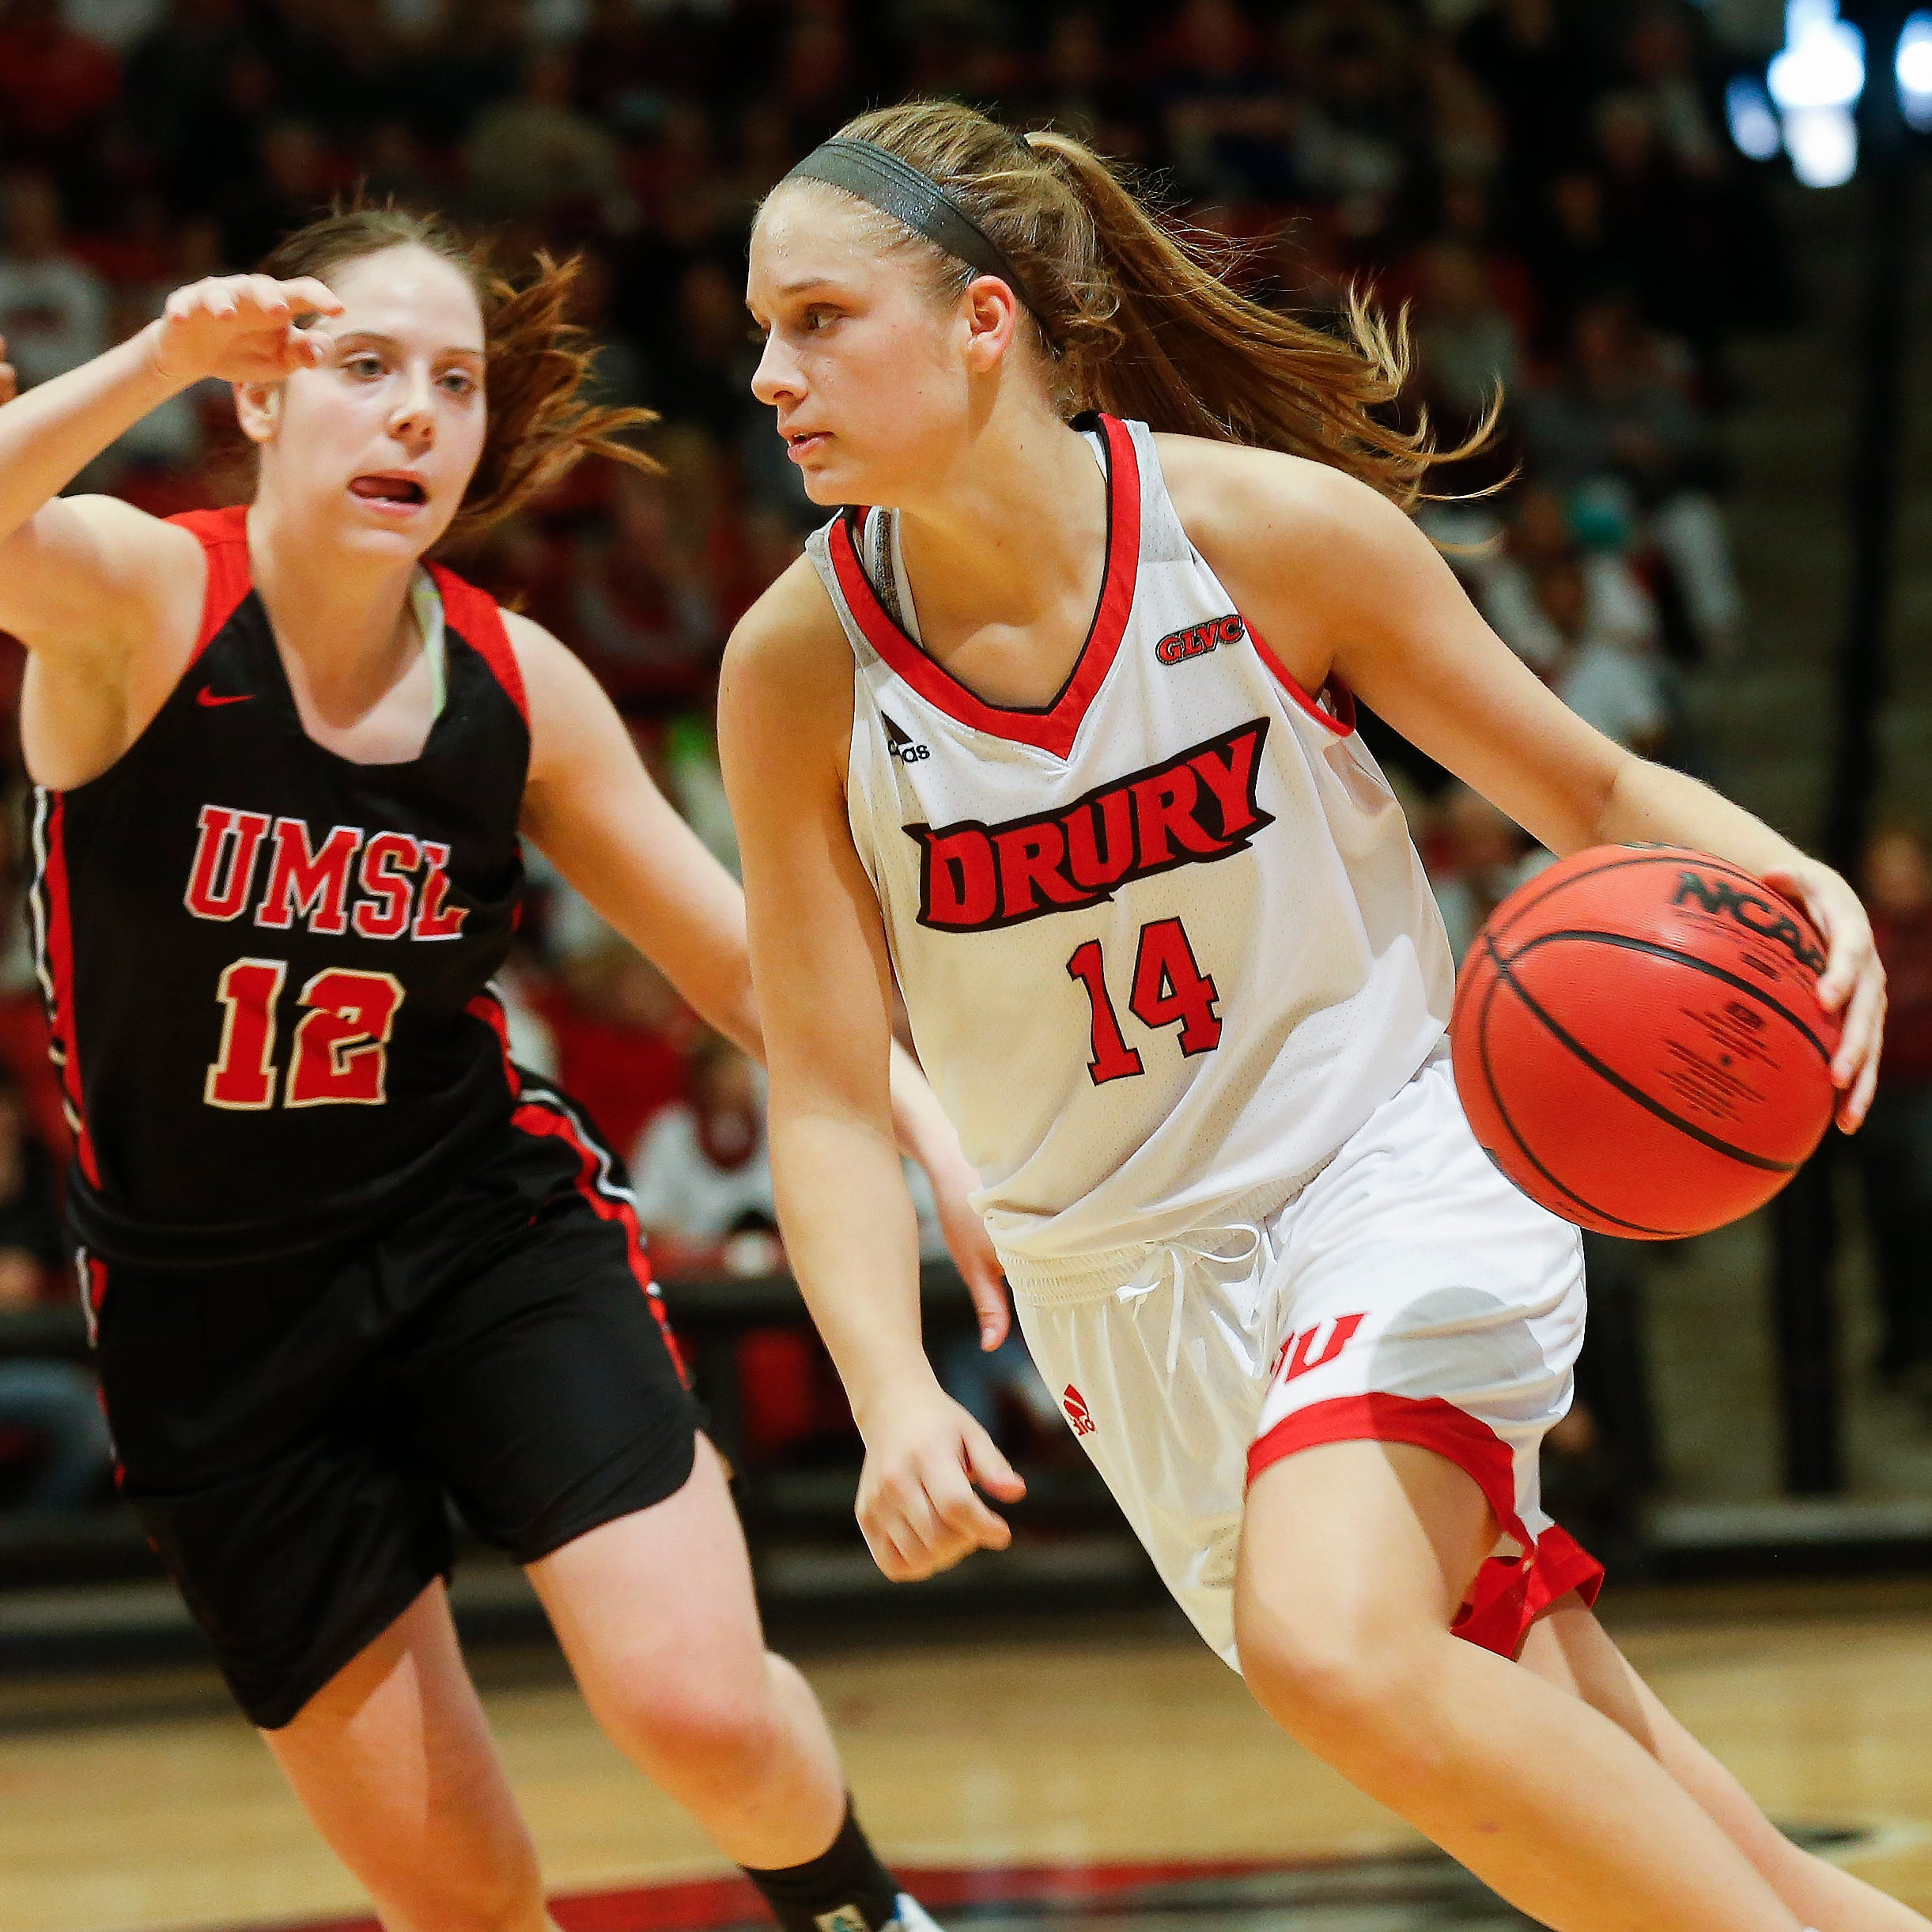 A Drury player got pushed over twice by an opponent but 2 Lady Panthers may get suspended. Why?